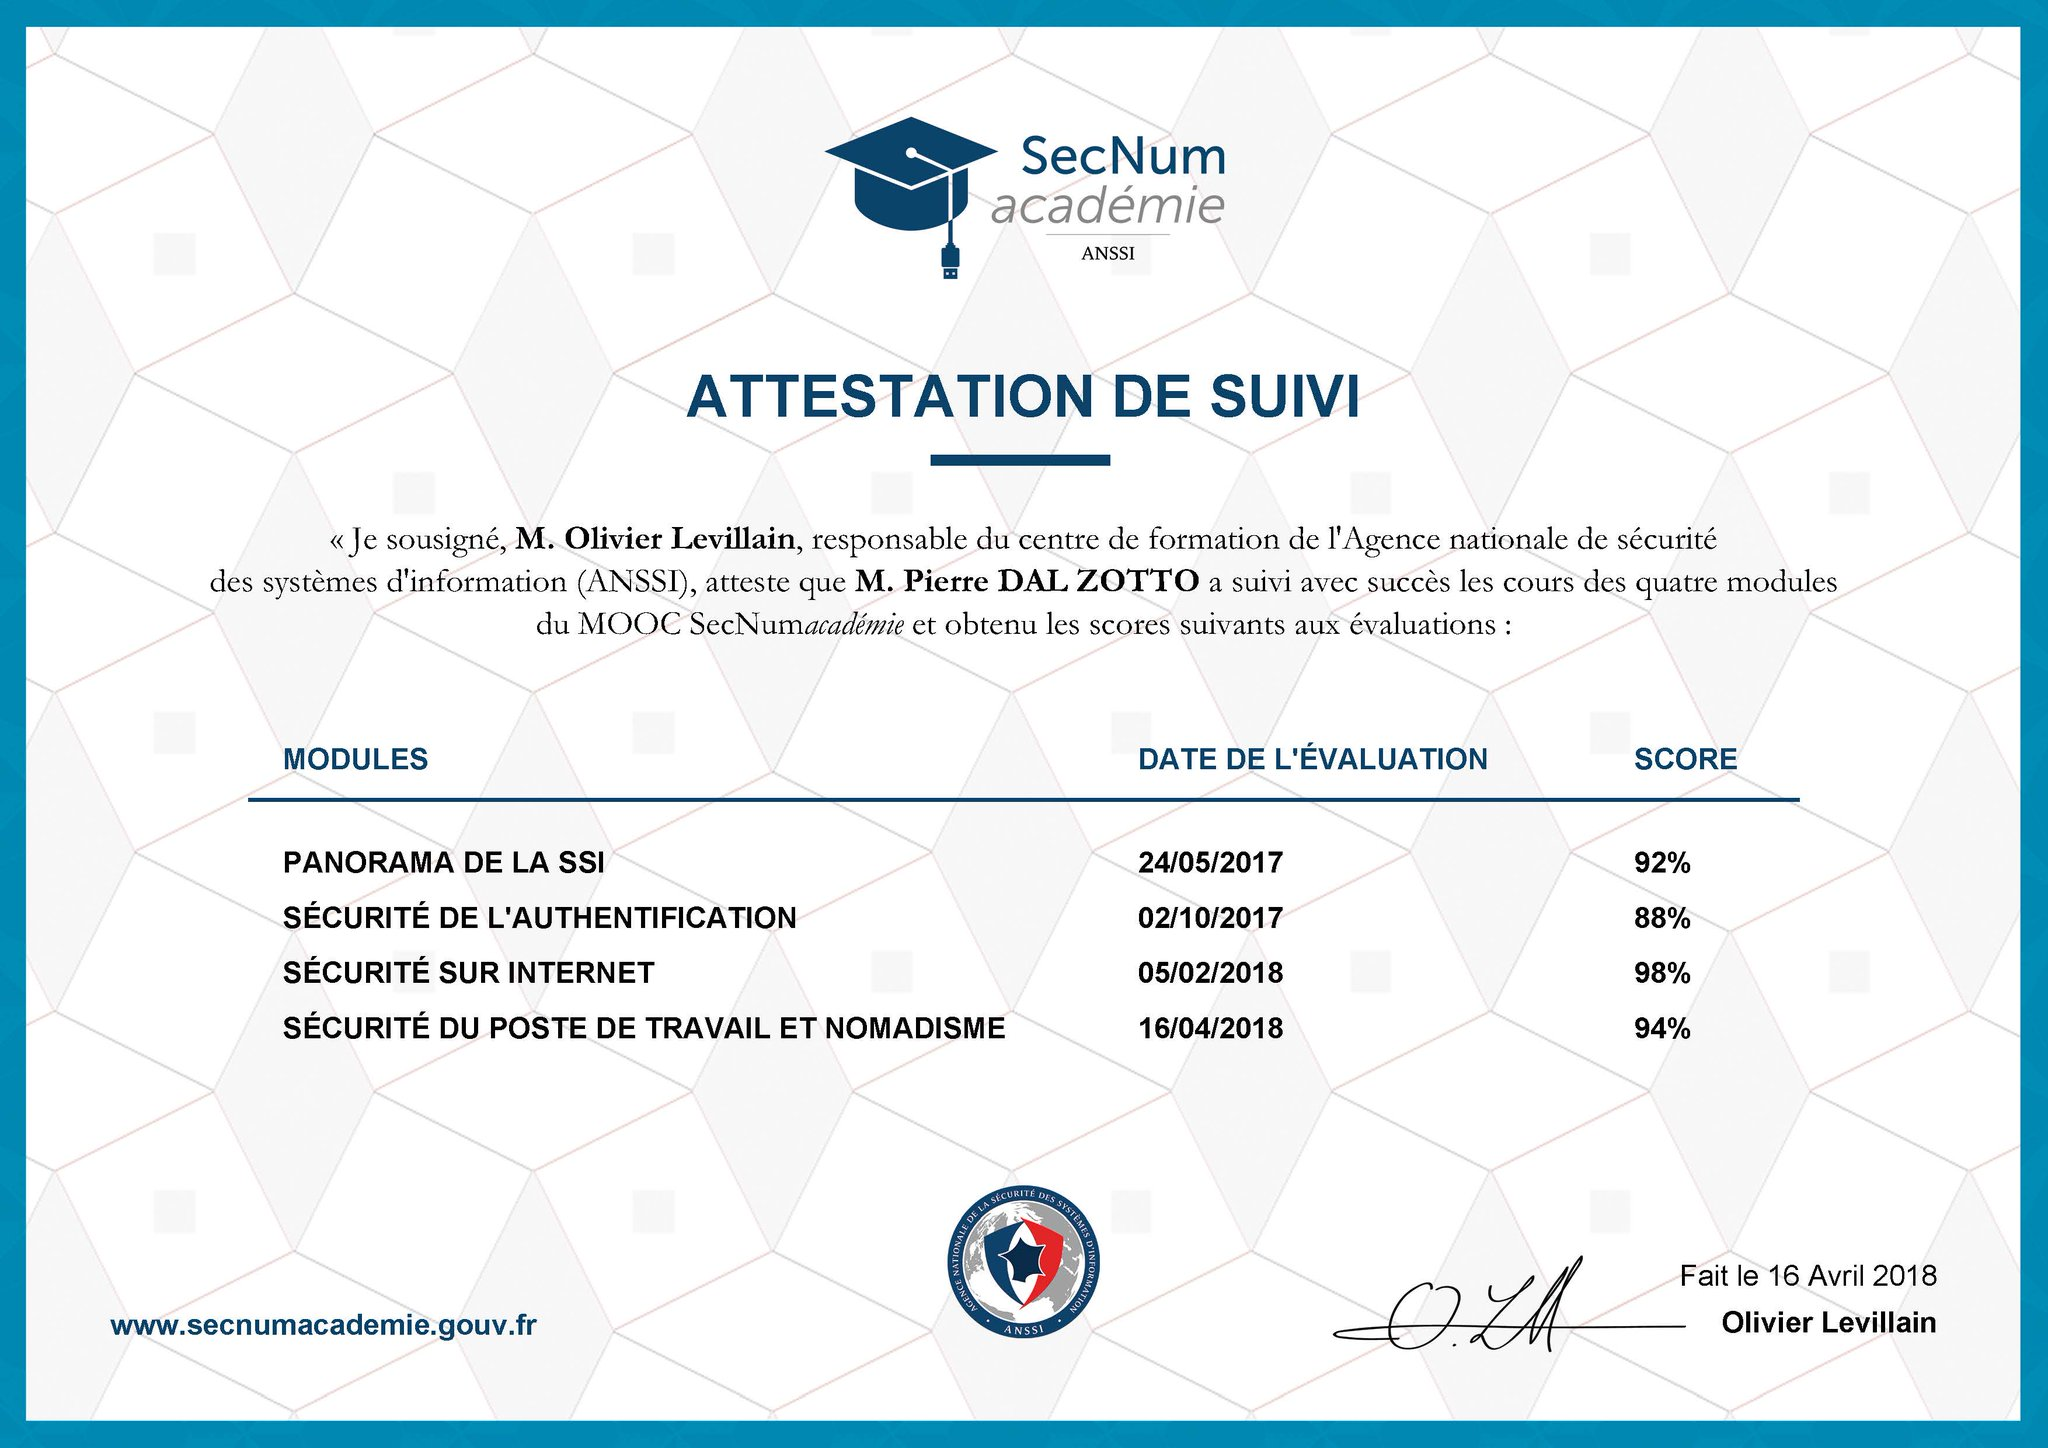 Attestation de suivie Pierre DAL ZOTTO MOOC SecNumAcademie